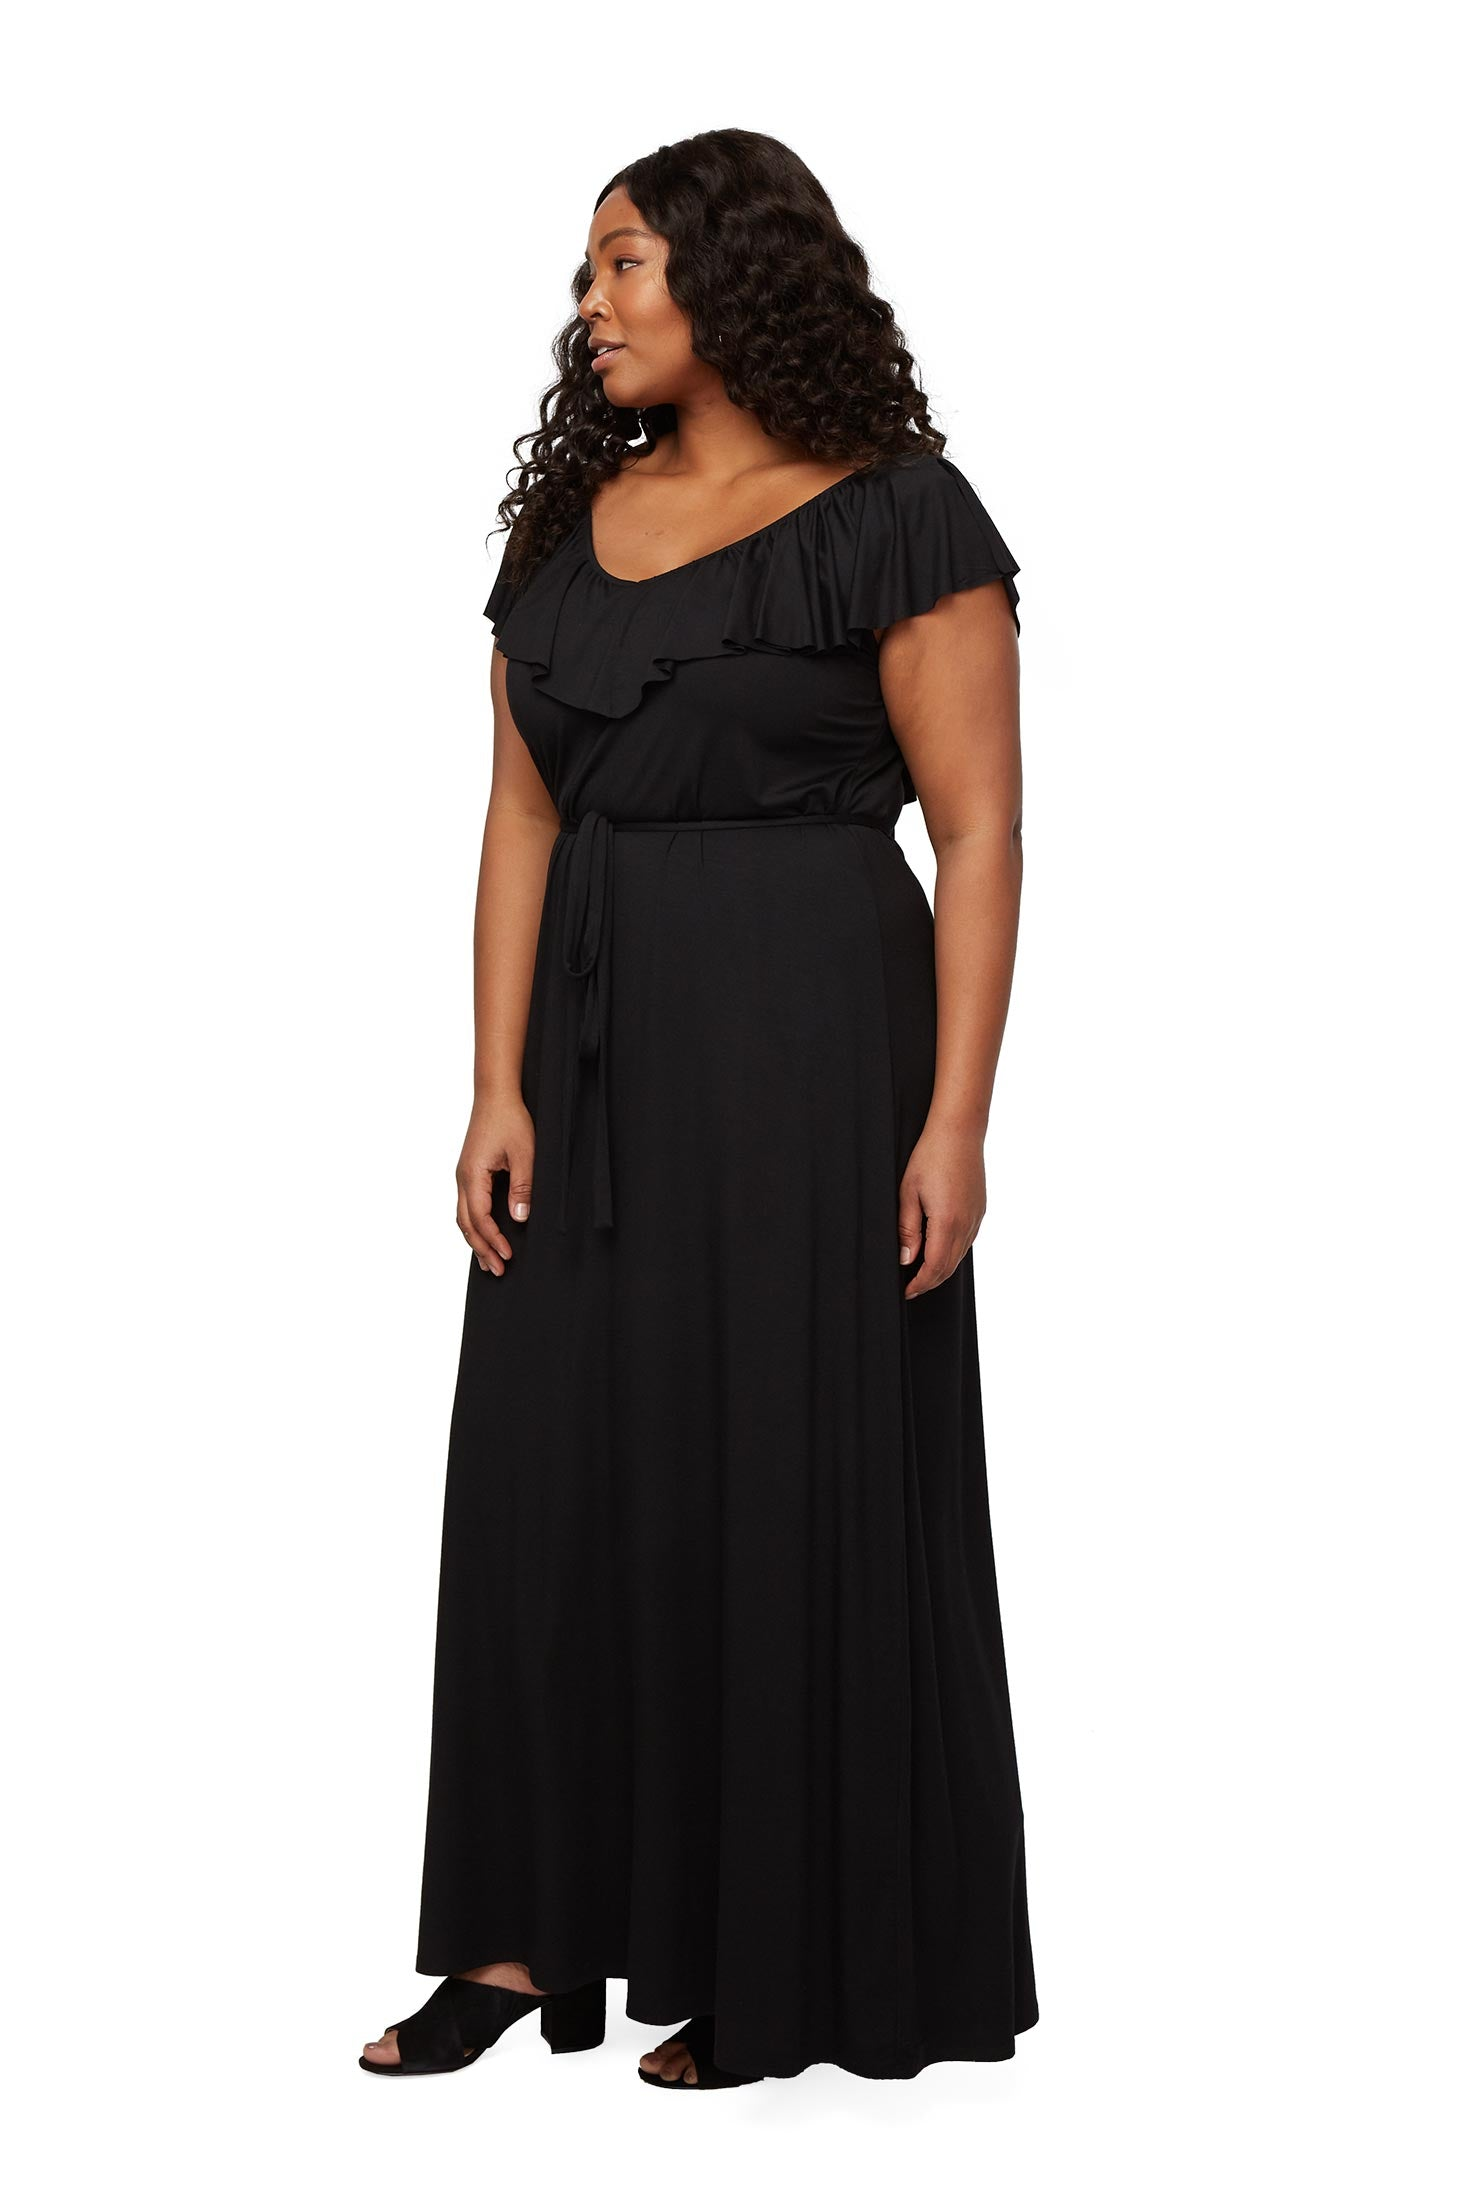 Loren Dress - Black, Plus Size